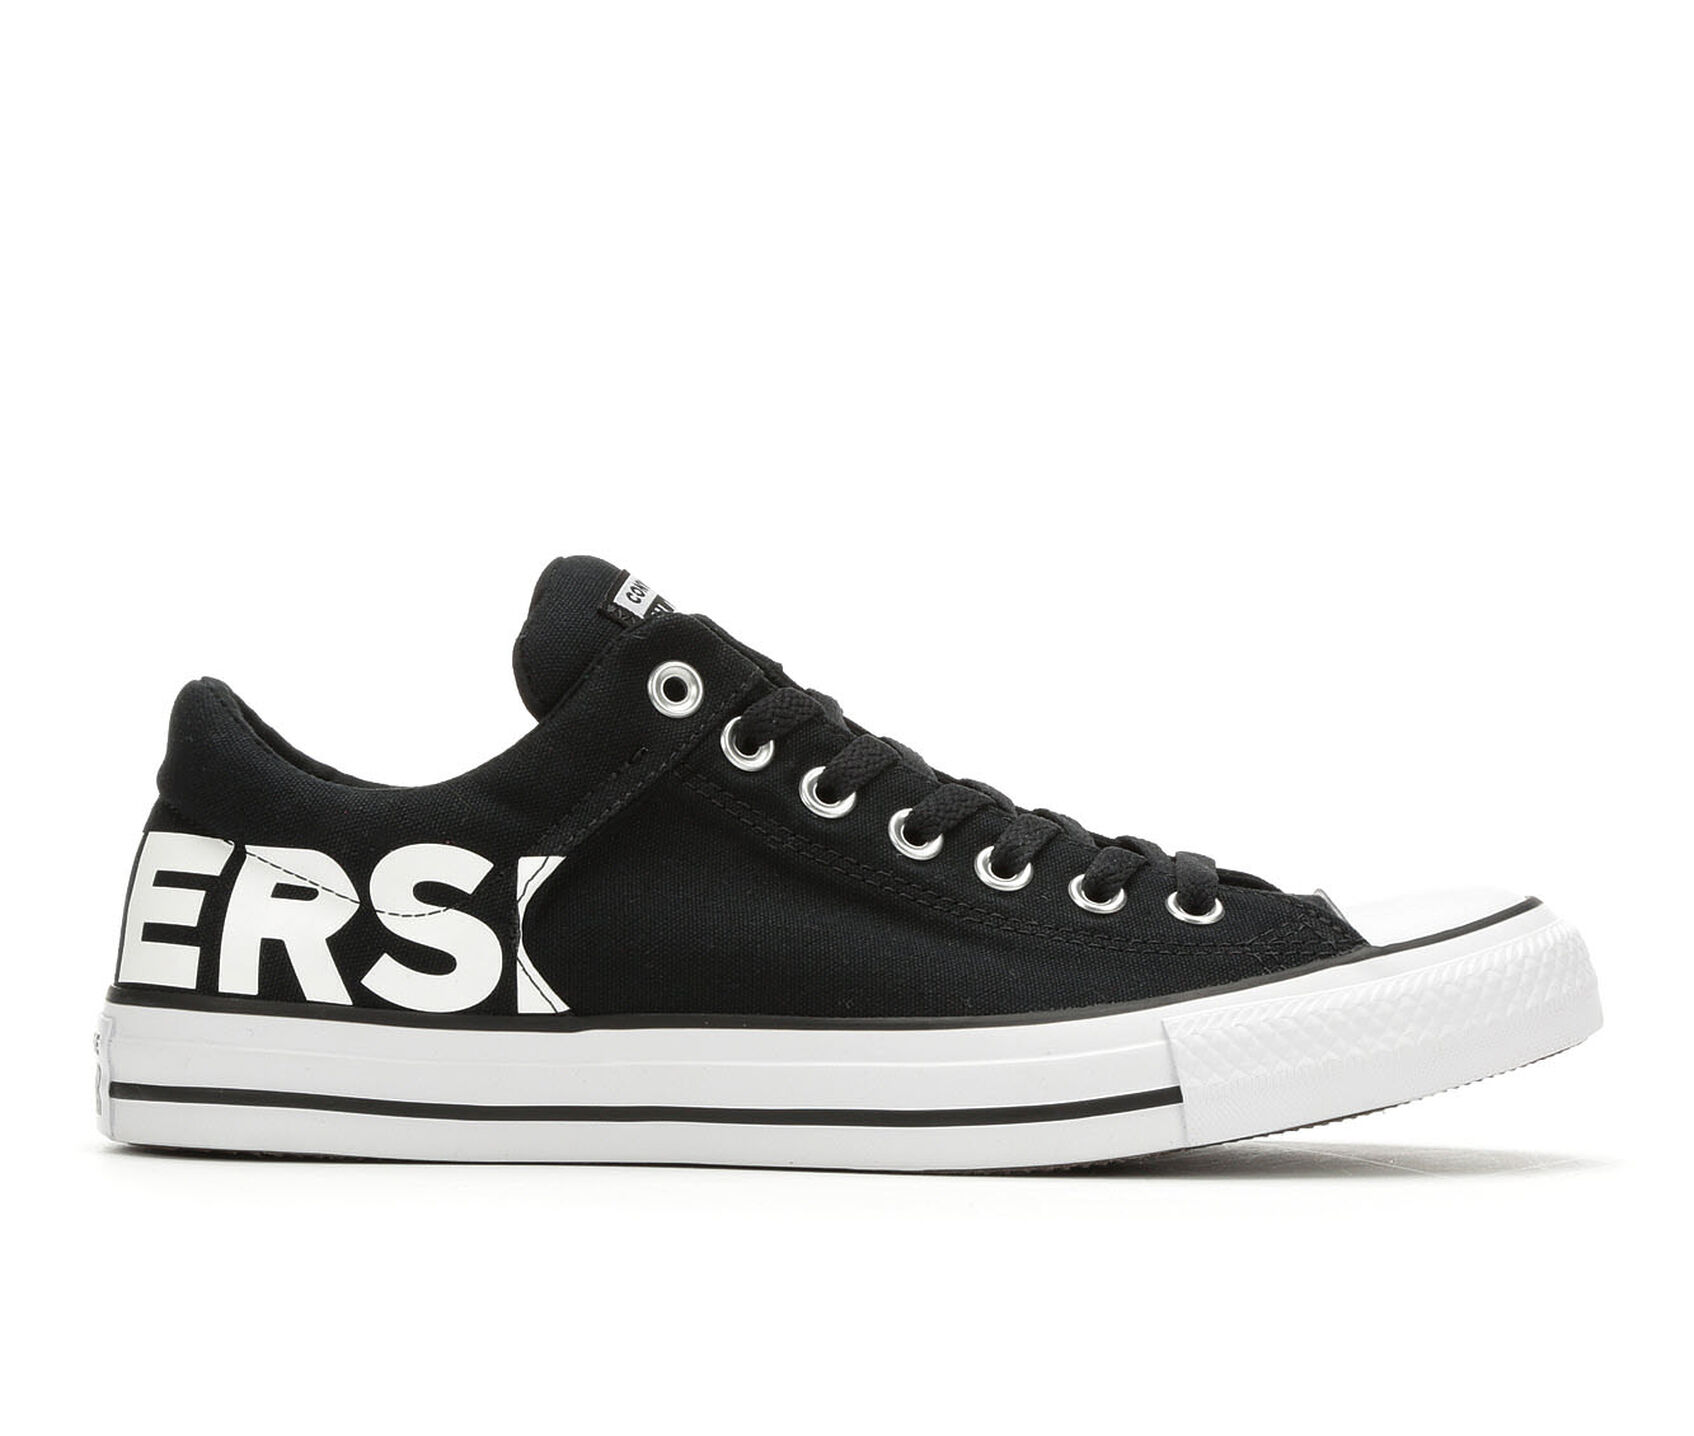 dae1108a4b574 Men's Converse Chuck Taylor High Street Ox Wordmark Sneakers